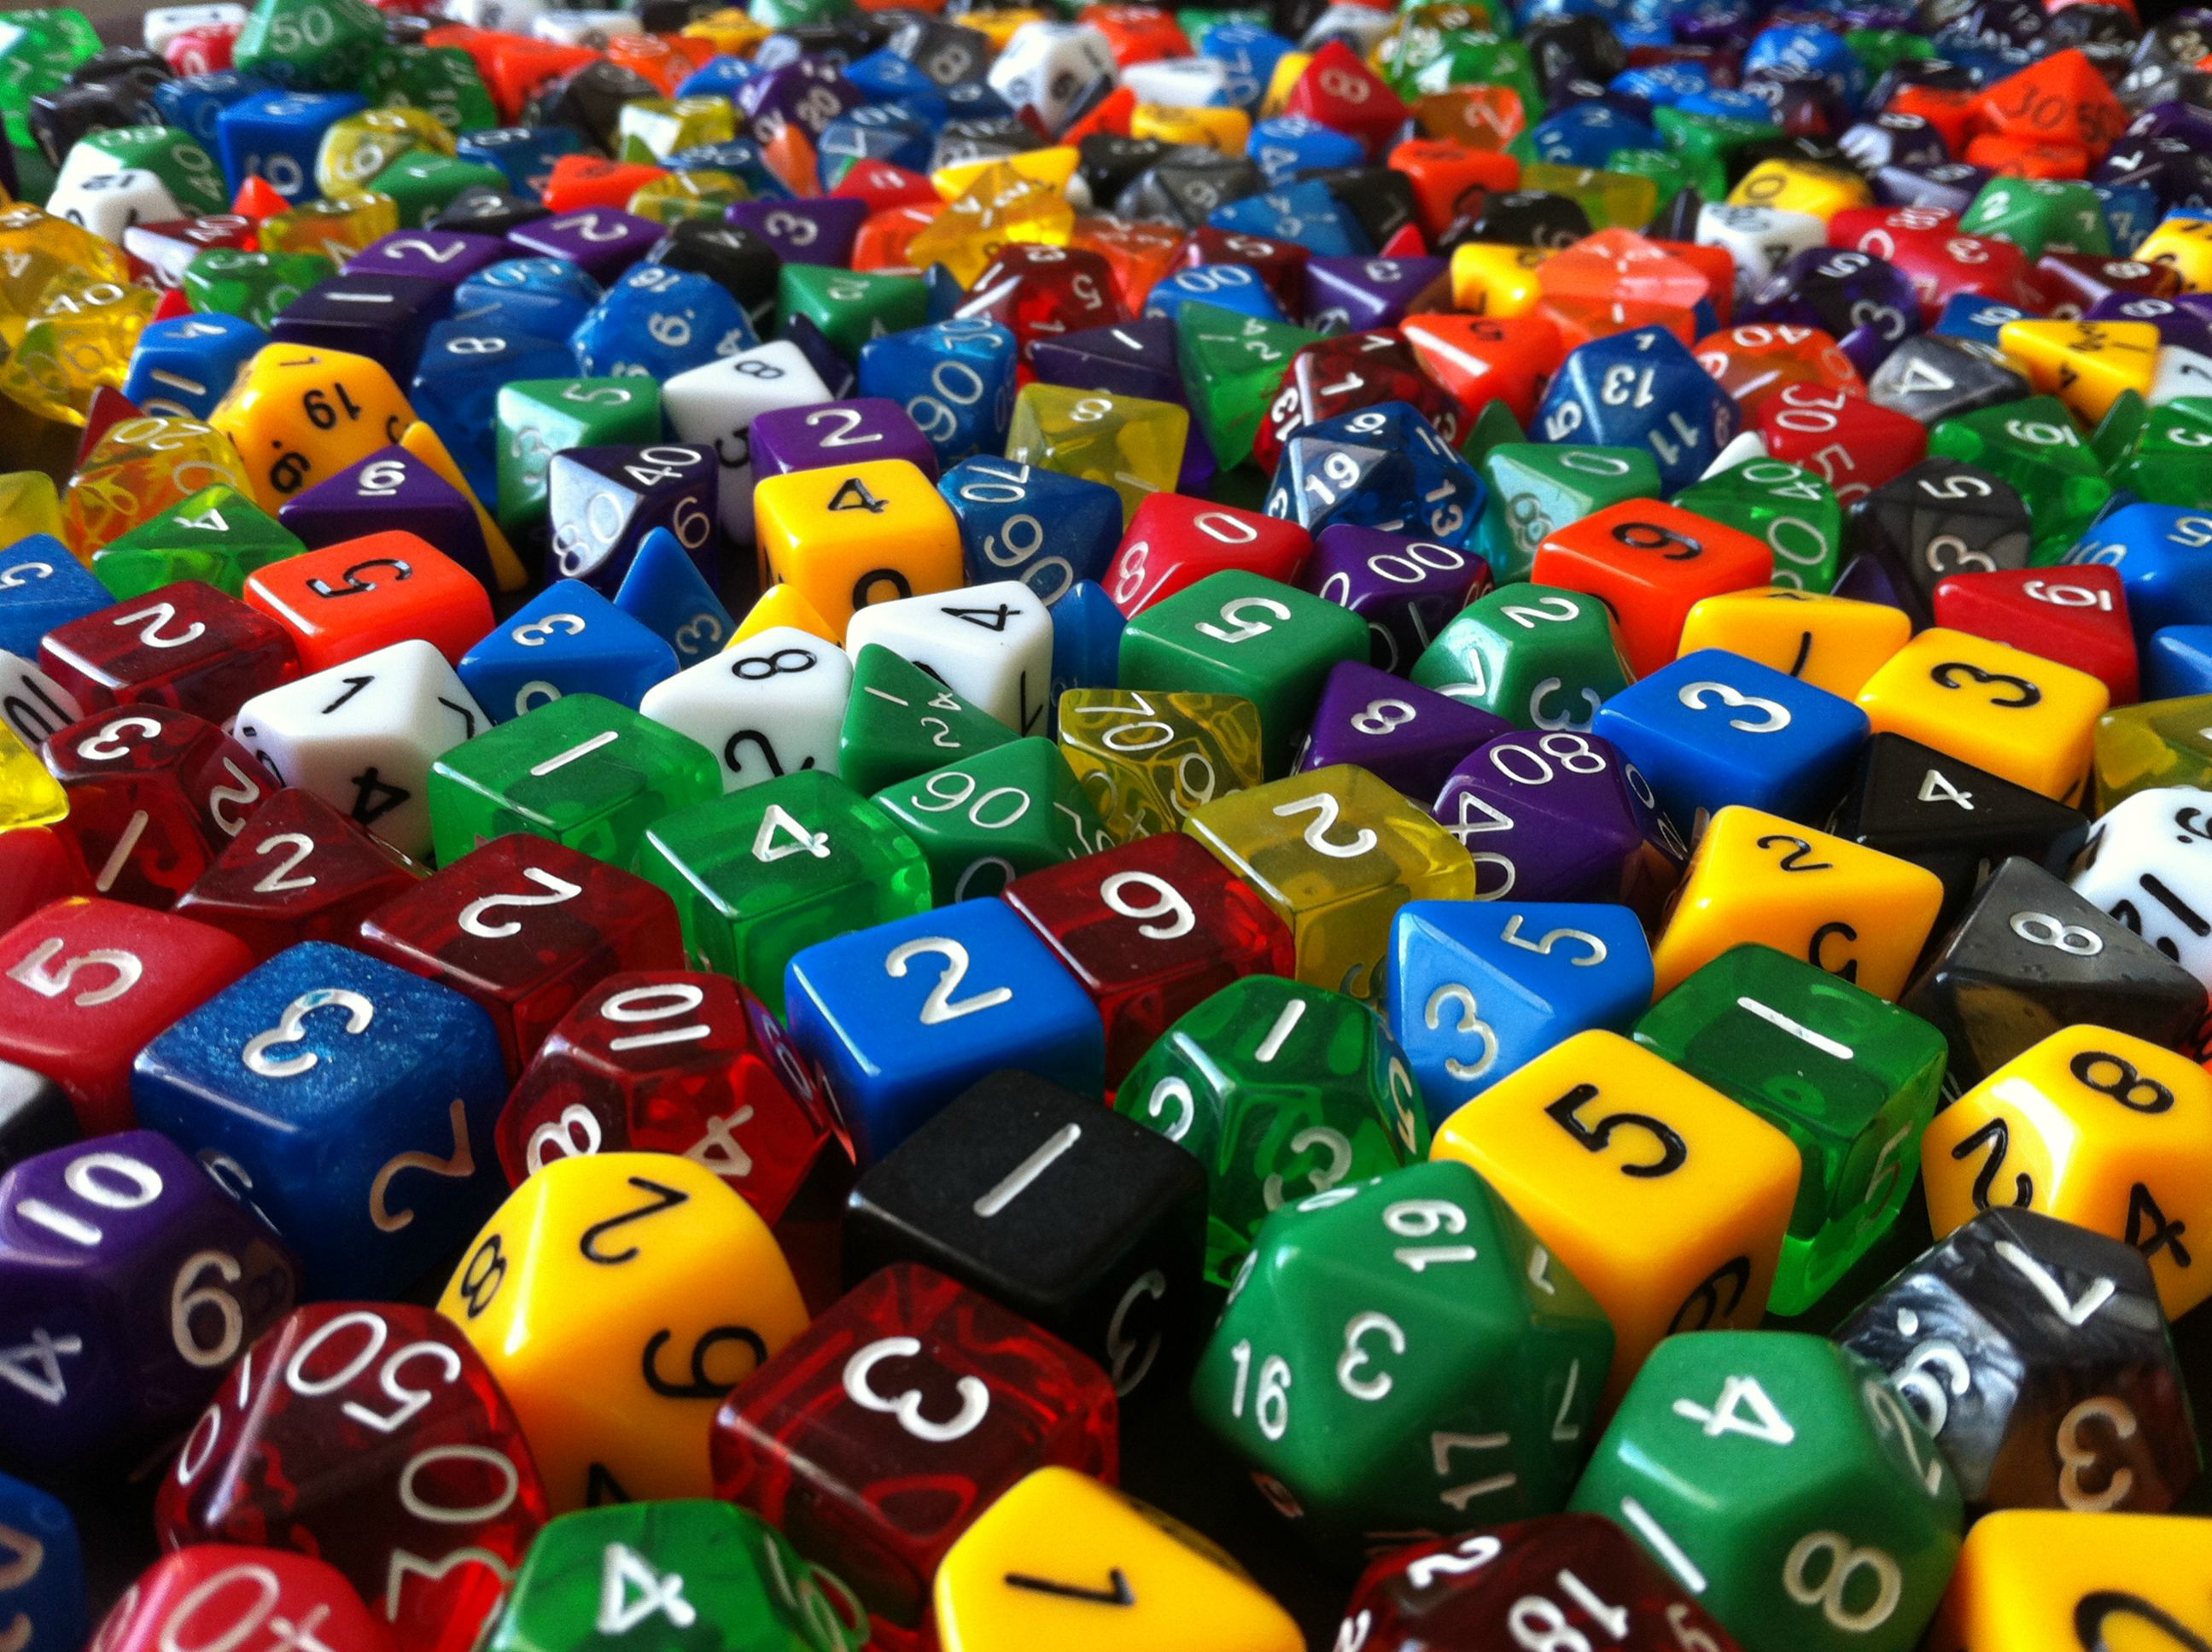 Board Games Day! Saturday, August 13, 10:30am-8:00pm